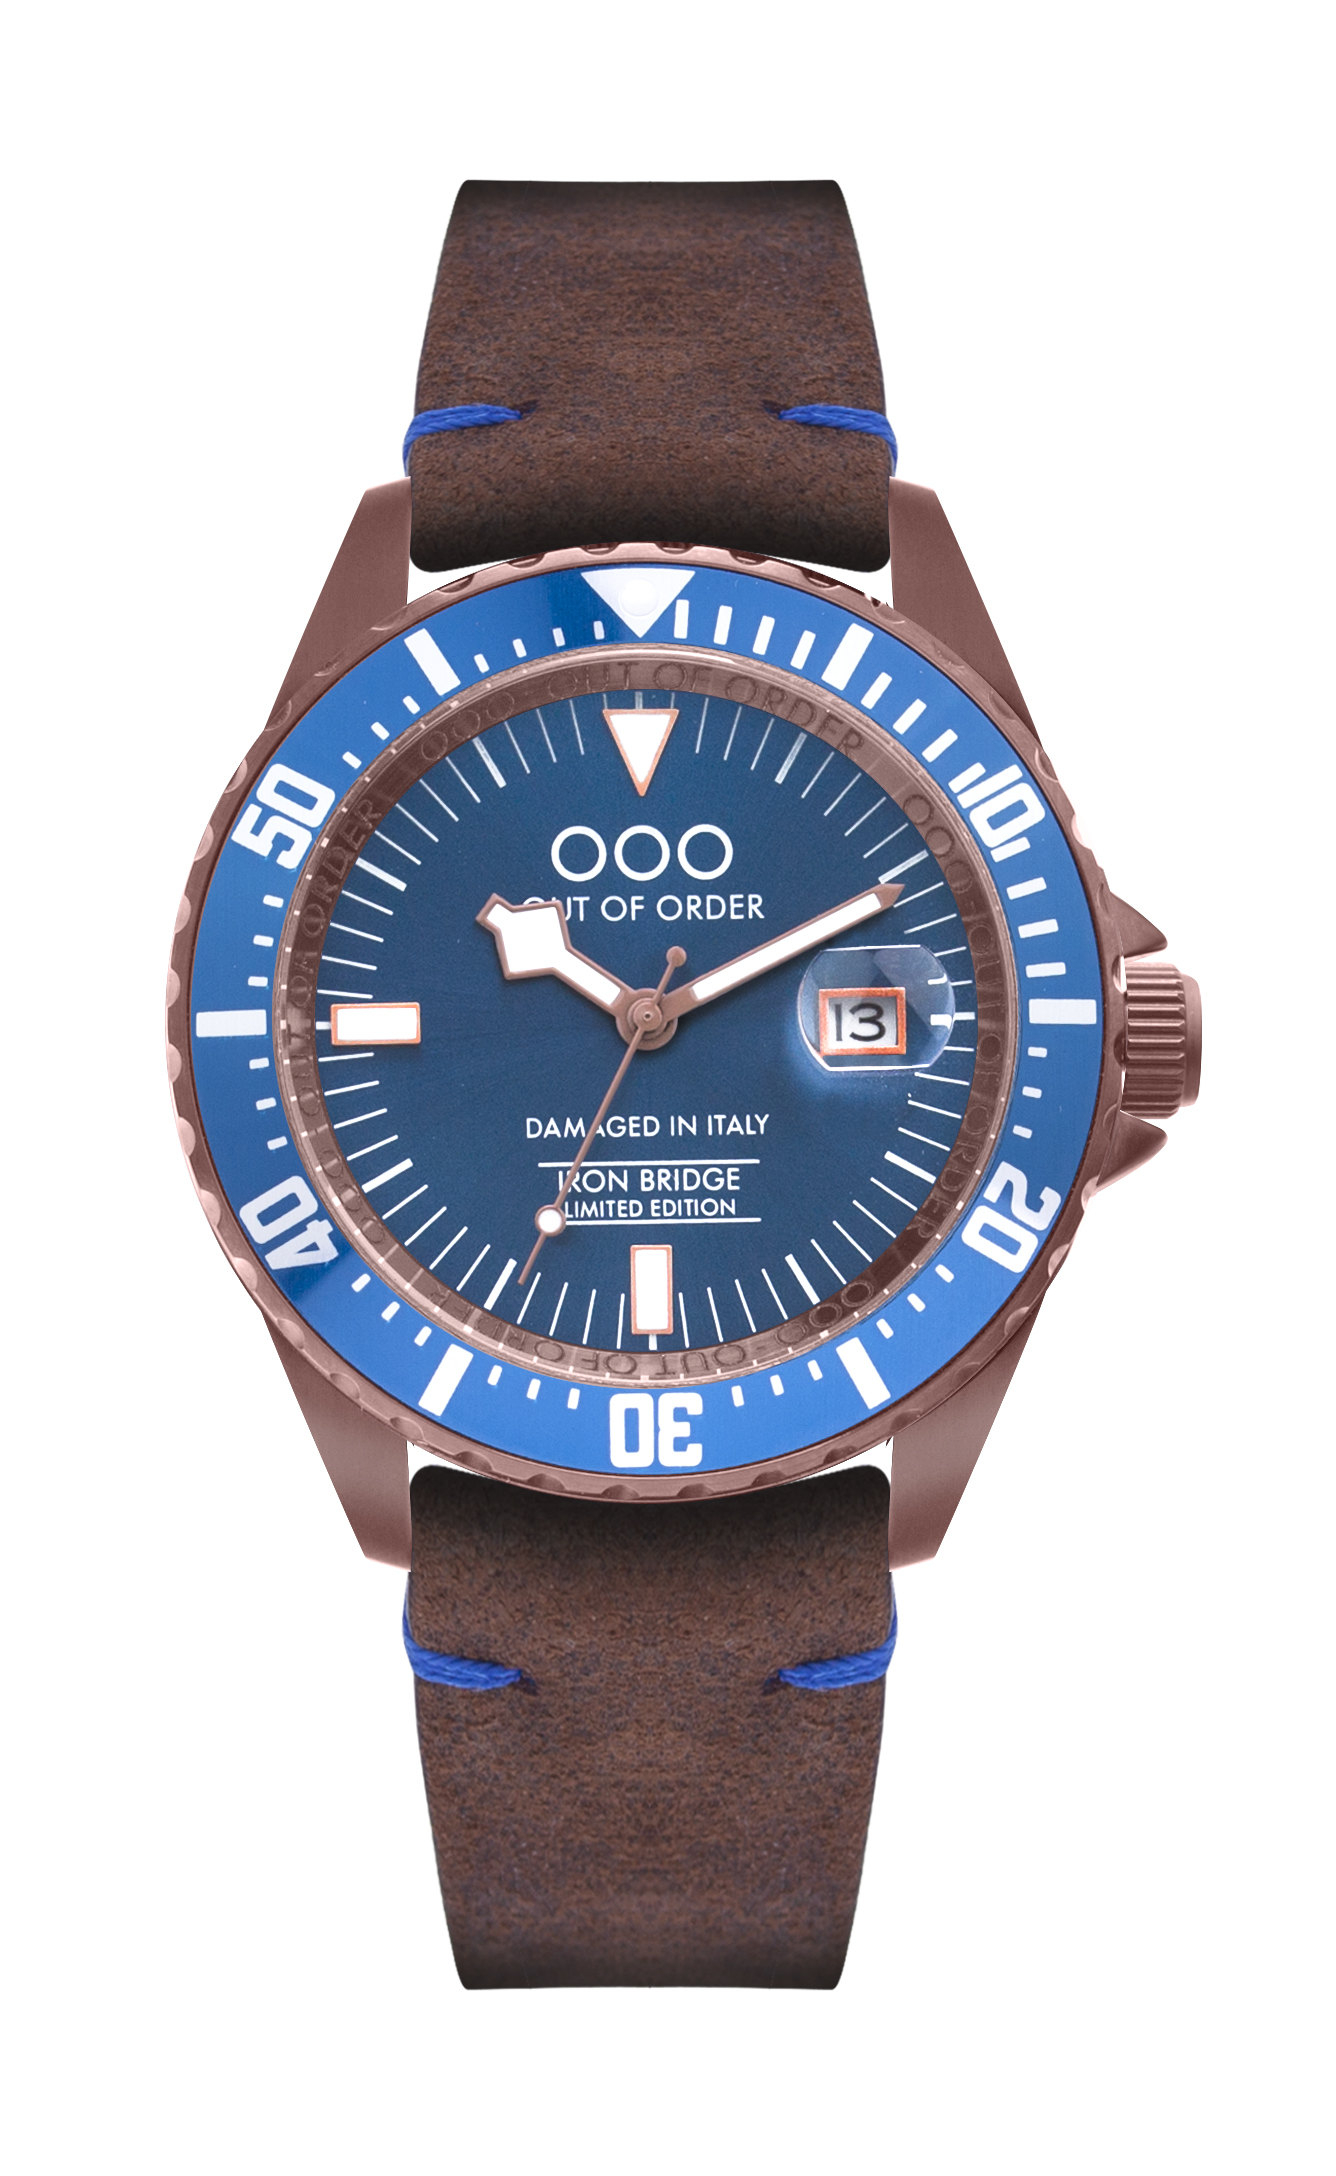 Limited Edition Out Of Order Watch - Brown Watch Band